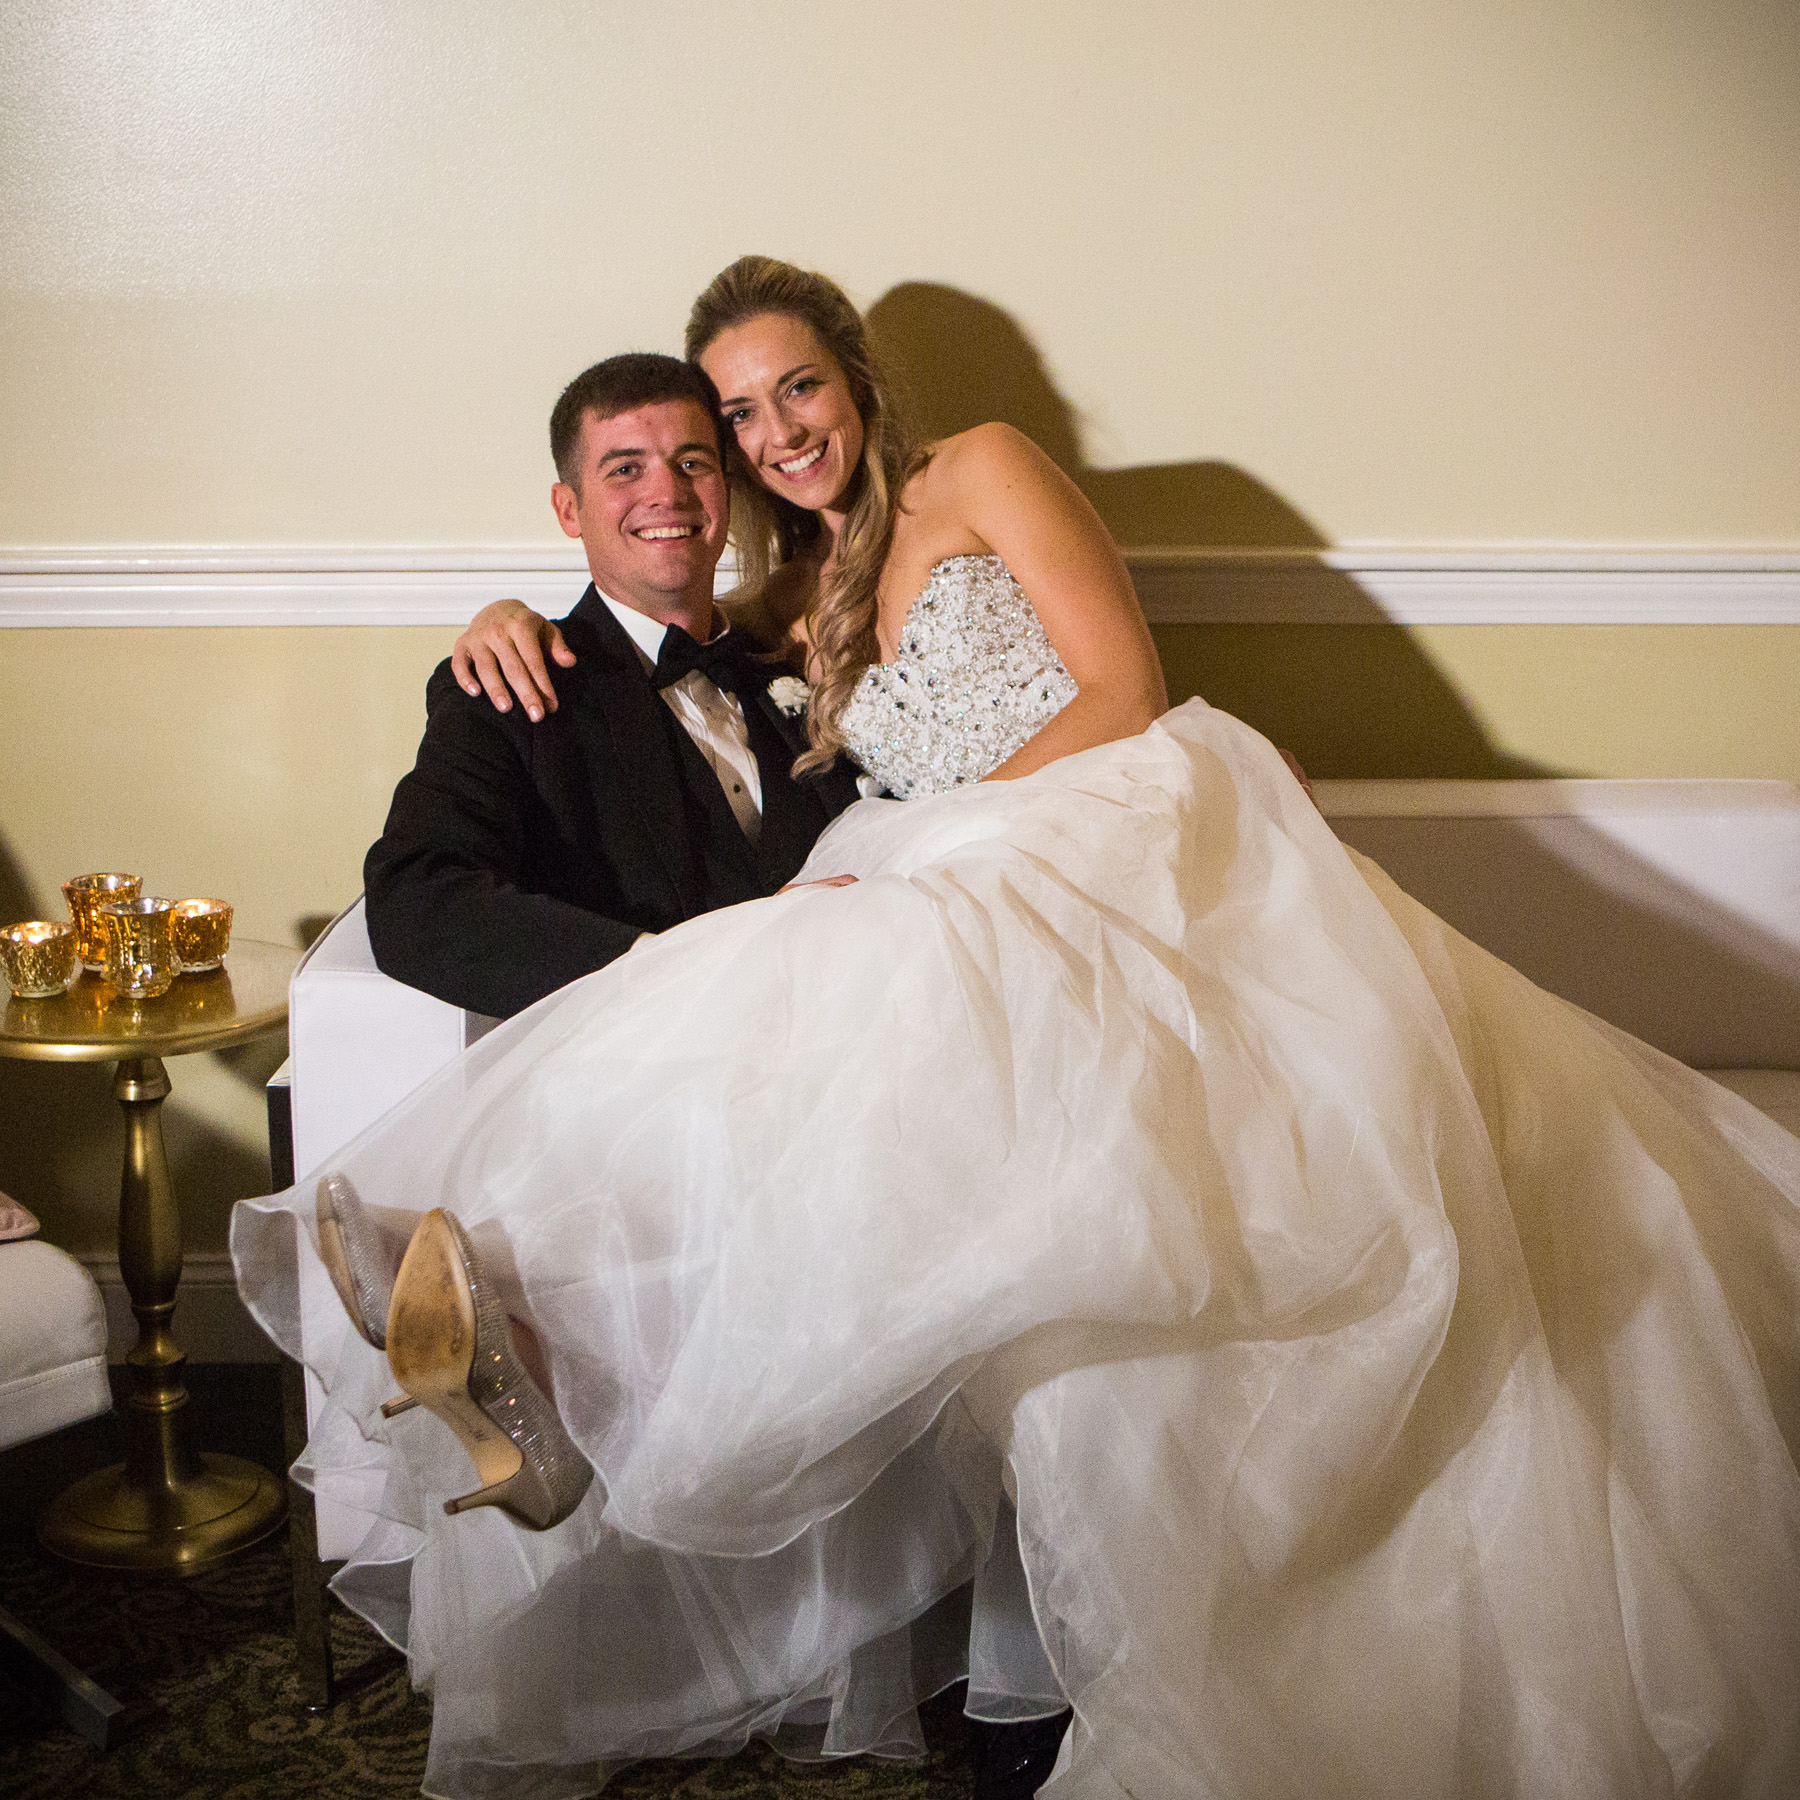 Taryn and Jim relax after wedding